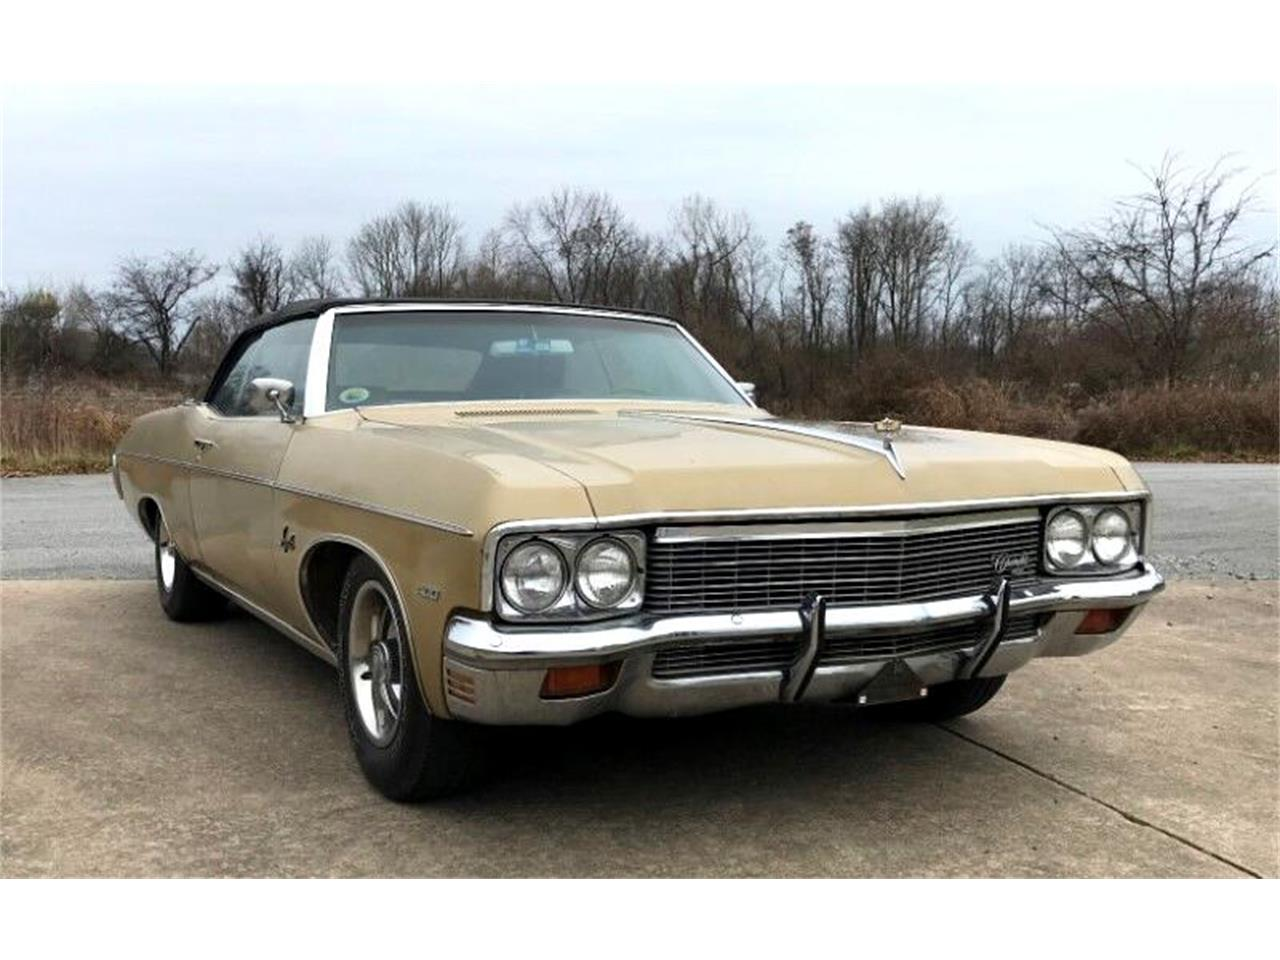 1970 Chevrolet Impala (CC-1379055) for sale in Harpers Ferry, West Virginia